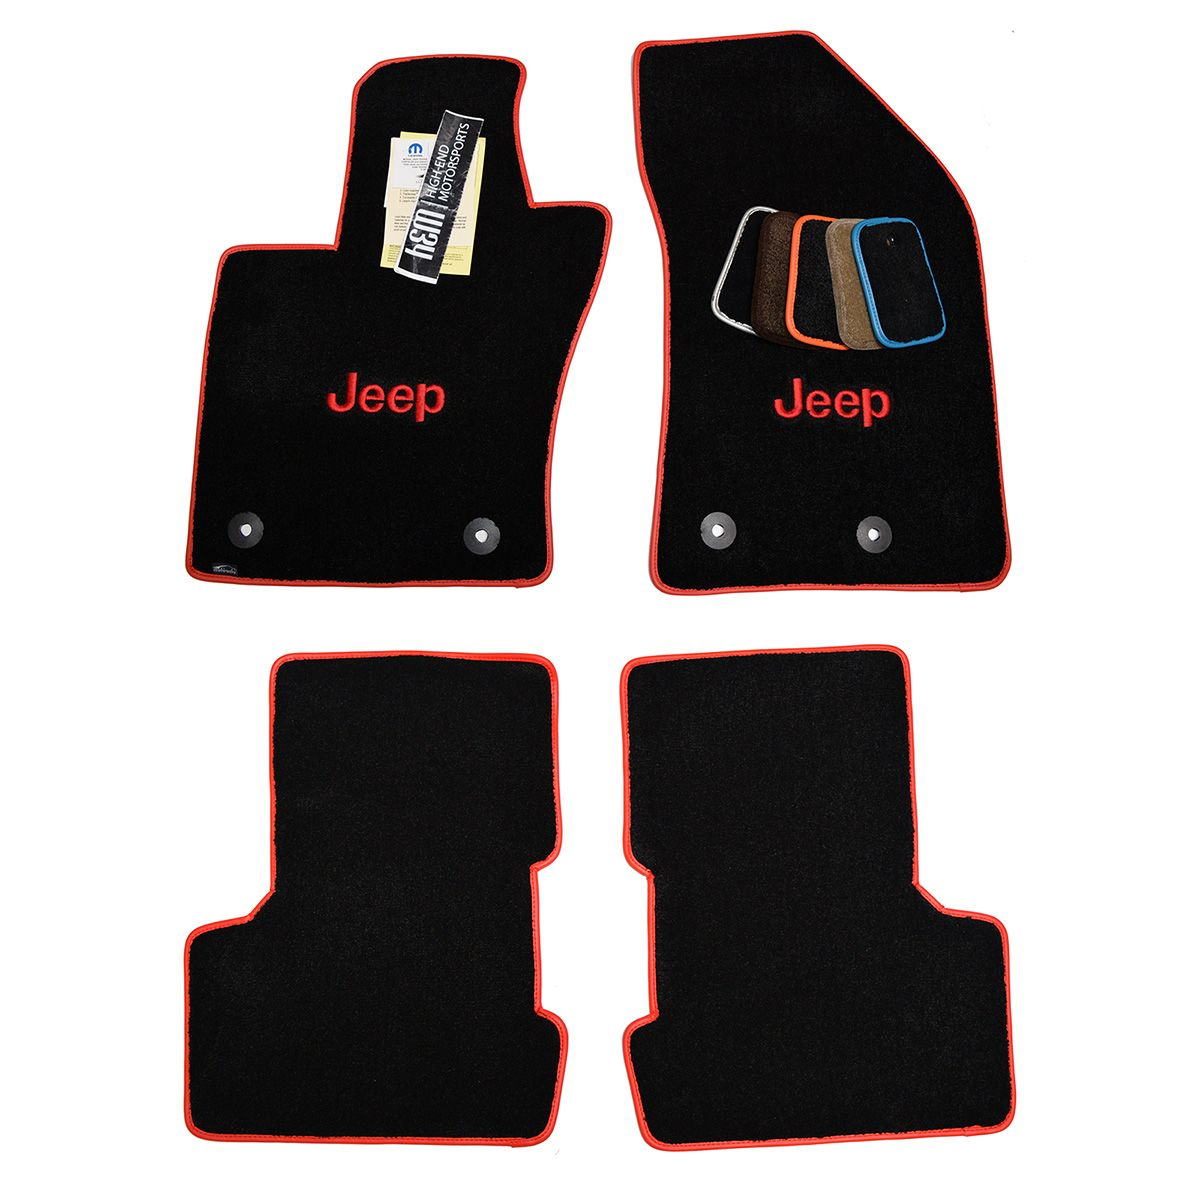 17 best images about jeep renegade rear seat jeep 17 best images about jeep renegade rear seat jeep renegade and forum jeep